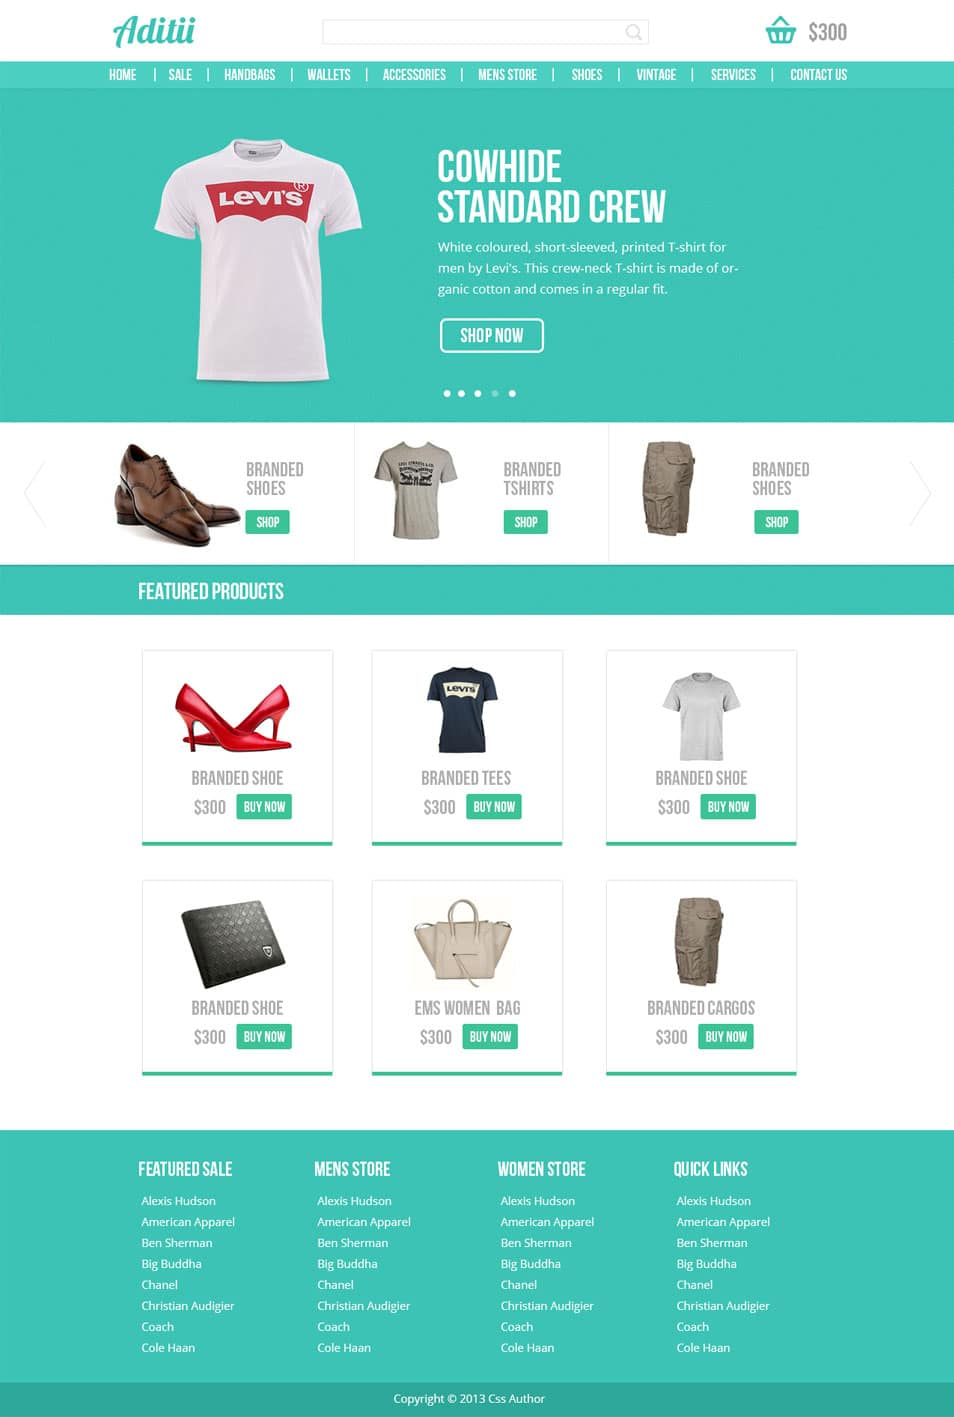 Premium Ecommerce Website Template PSD - cssauthor.com